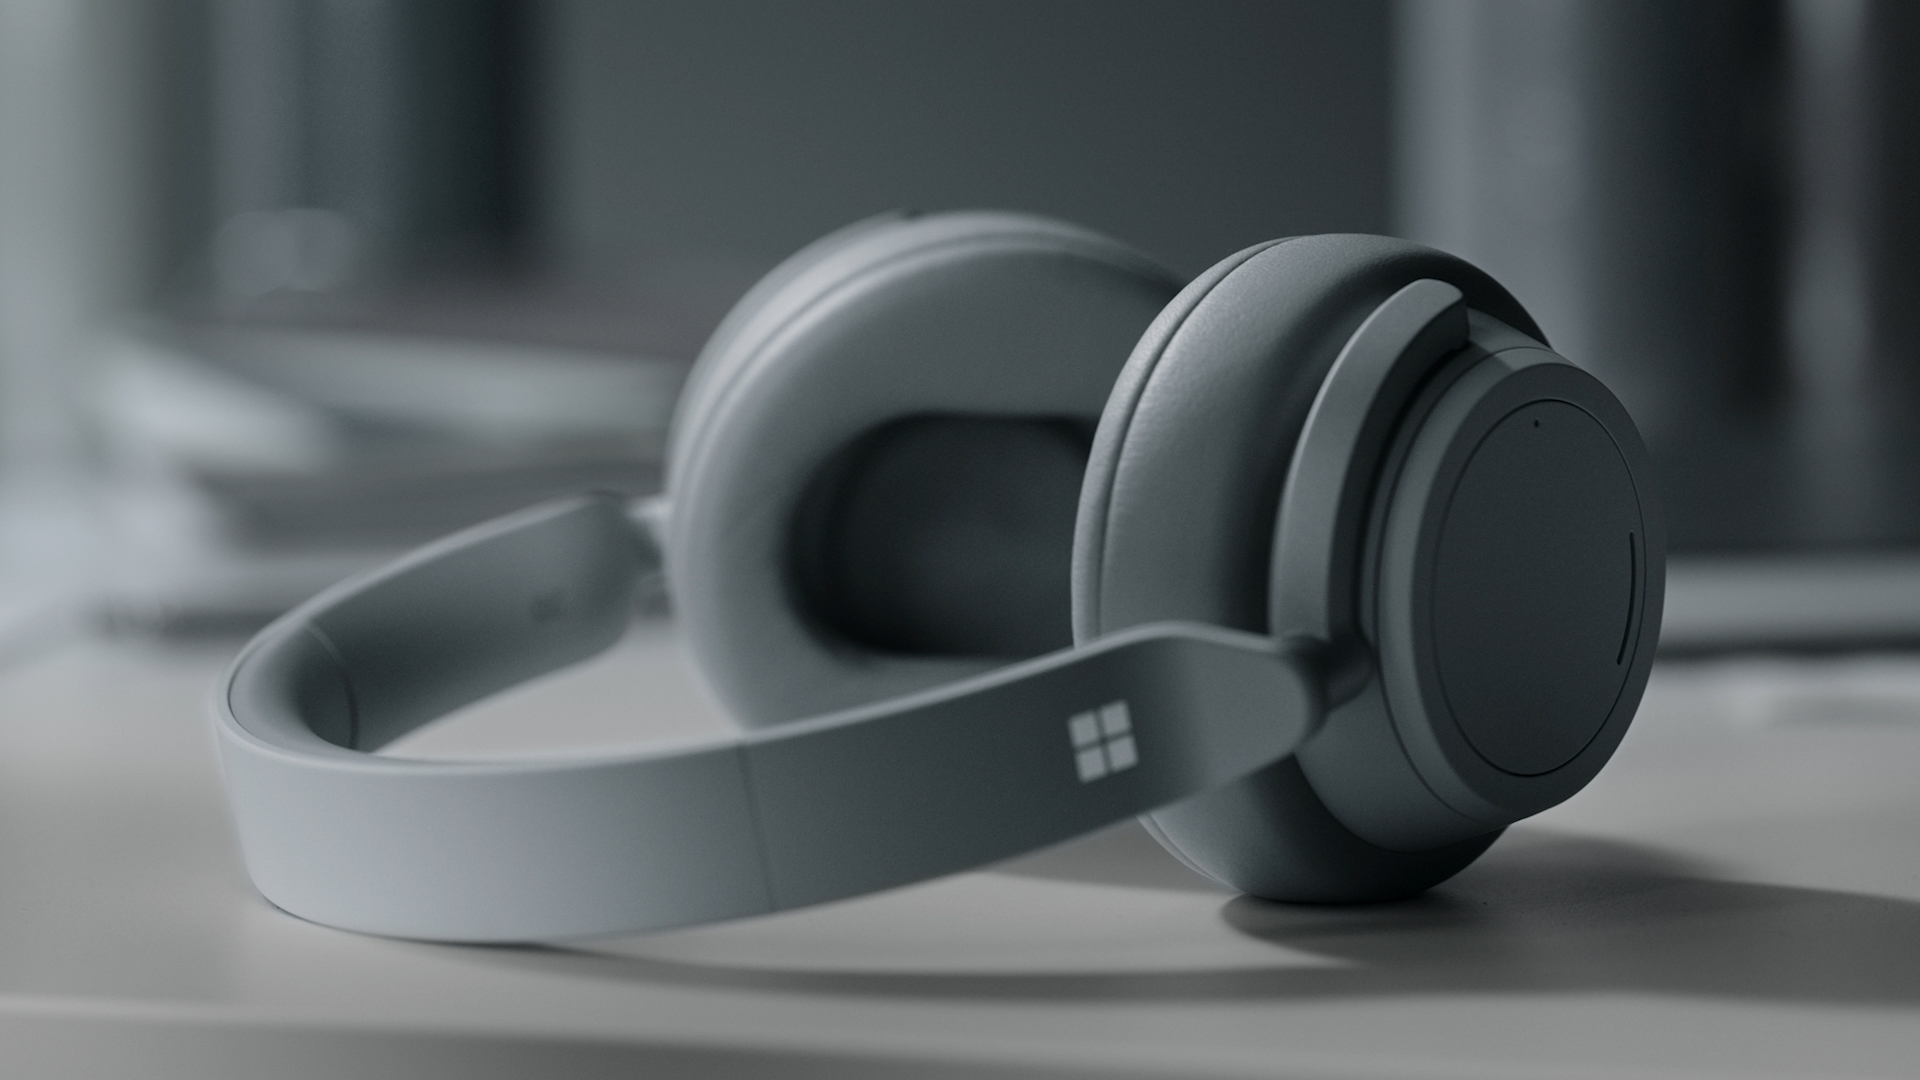 hight resolution of meet the new surface headphones the smarter way to listen microsoft surface